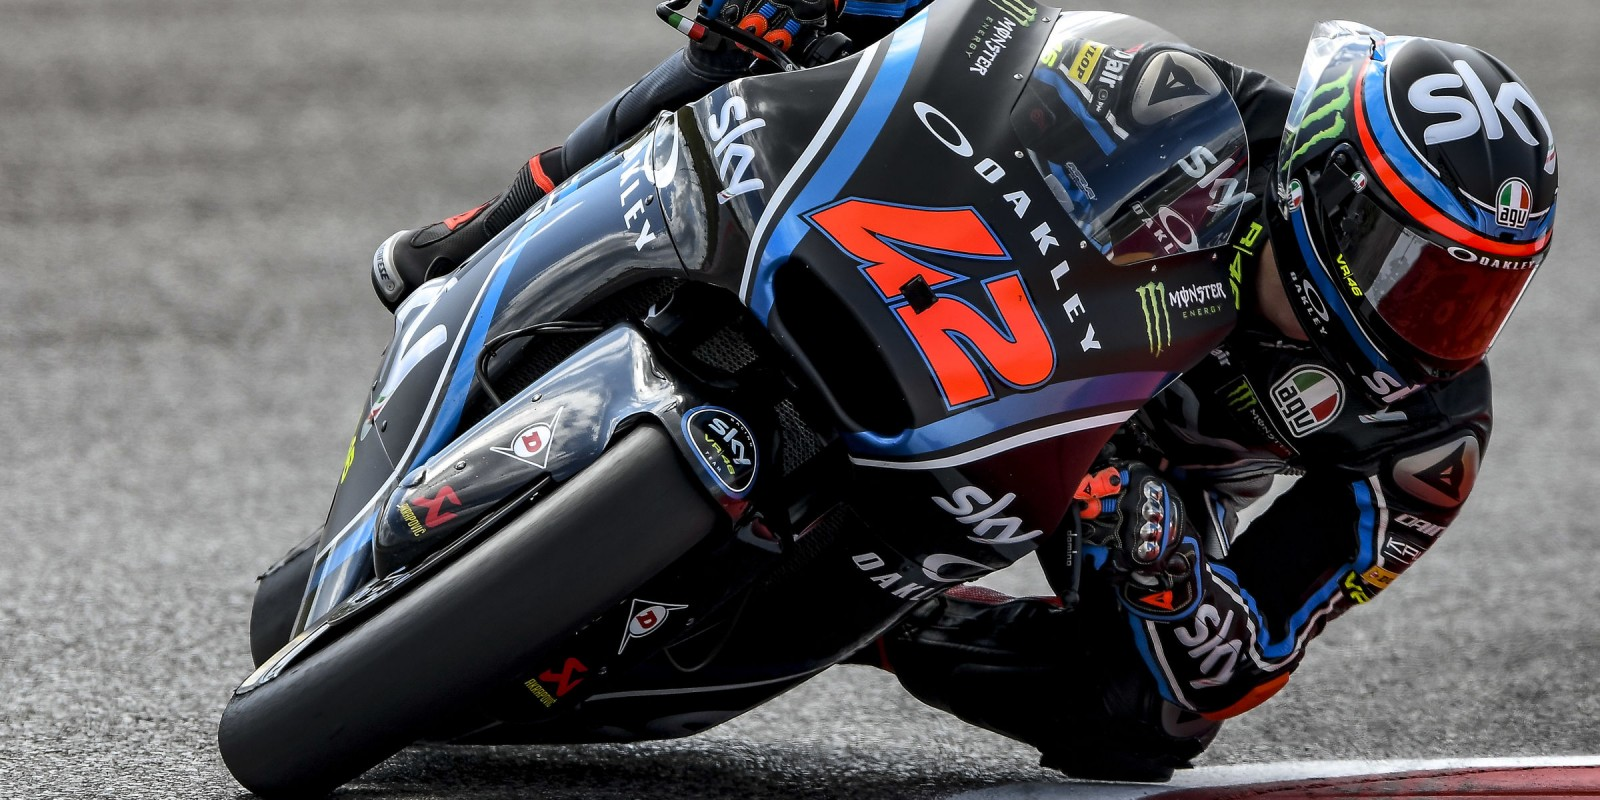 Francesco Bagnaia at the 2017 Grand Prix of Americas